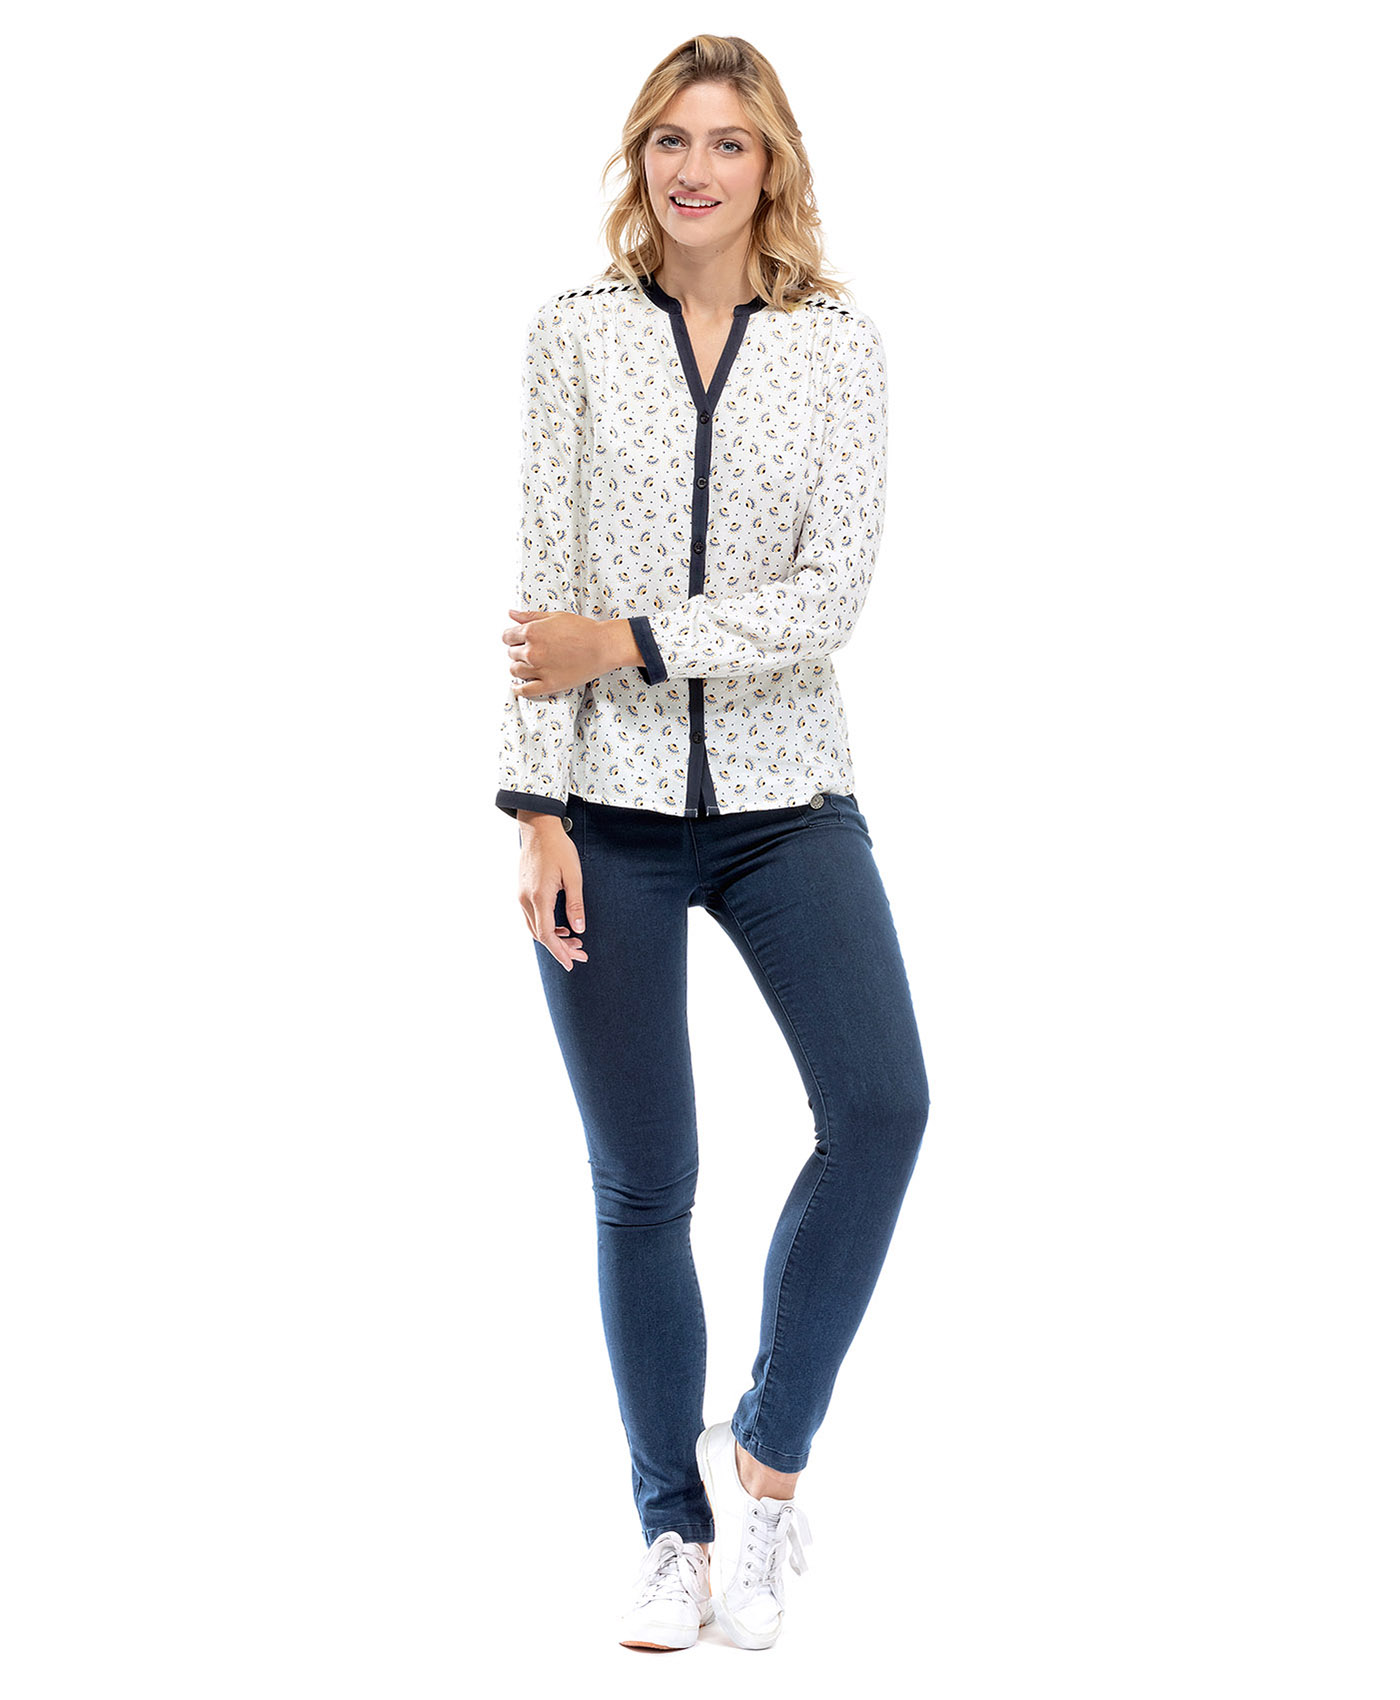 Chemise manches longues blanche - Mode marine Femme